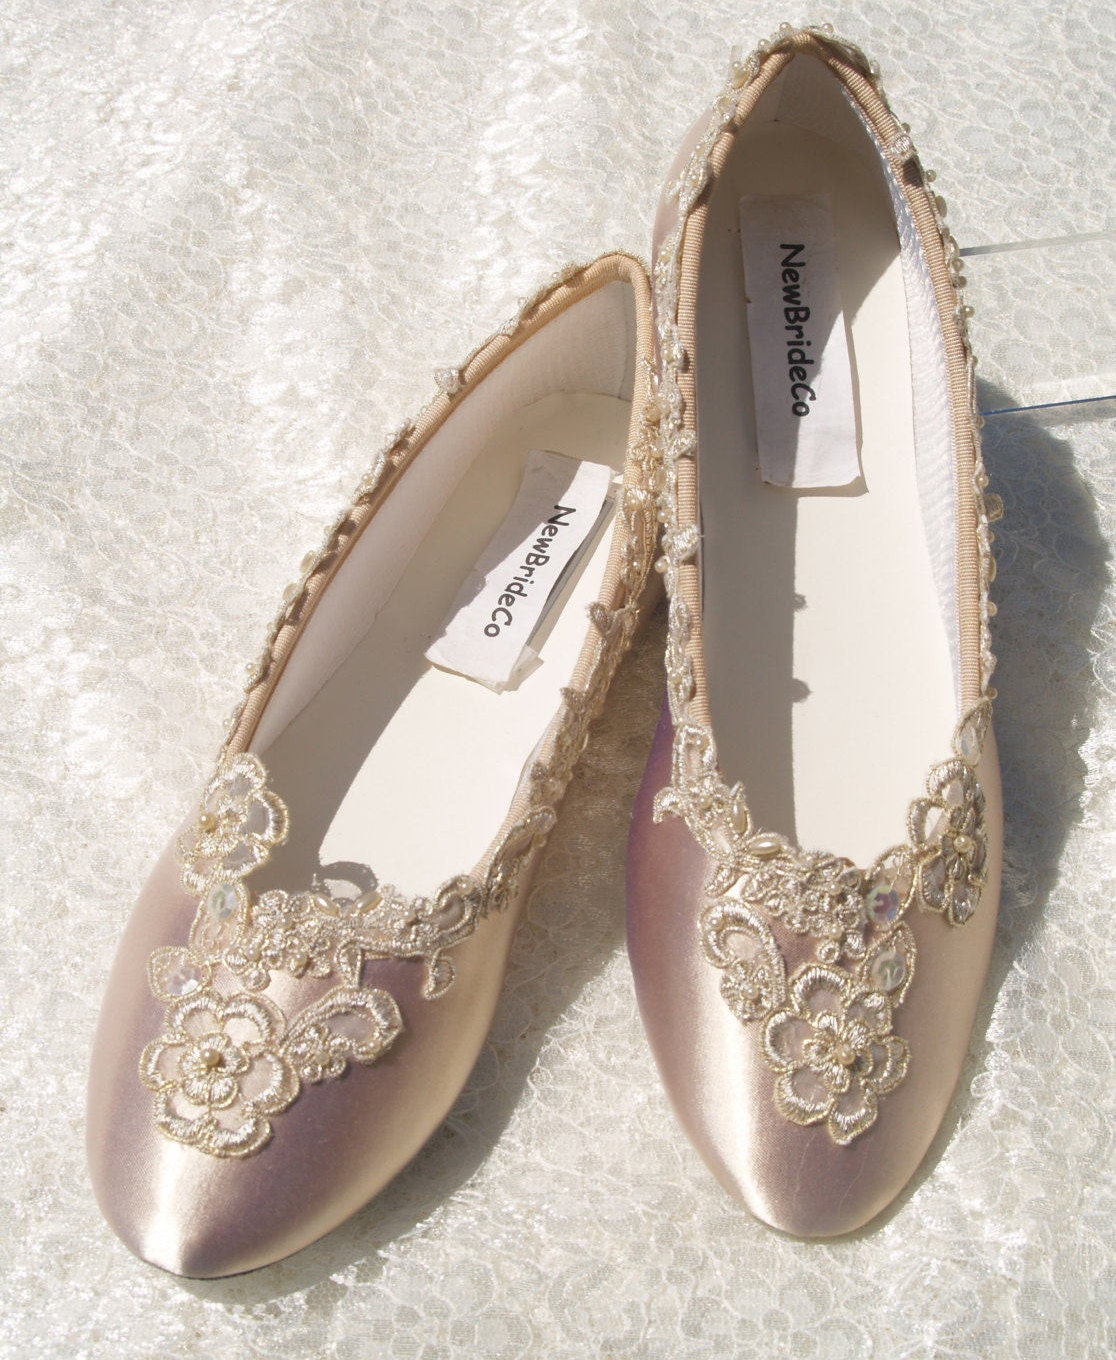 Gold High Heel Bridesmaid Name Champagne Party Wedding: Champagne Wedding Flats Bridal Shoe Elegantly Gold Trimmed